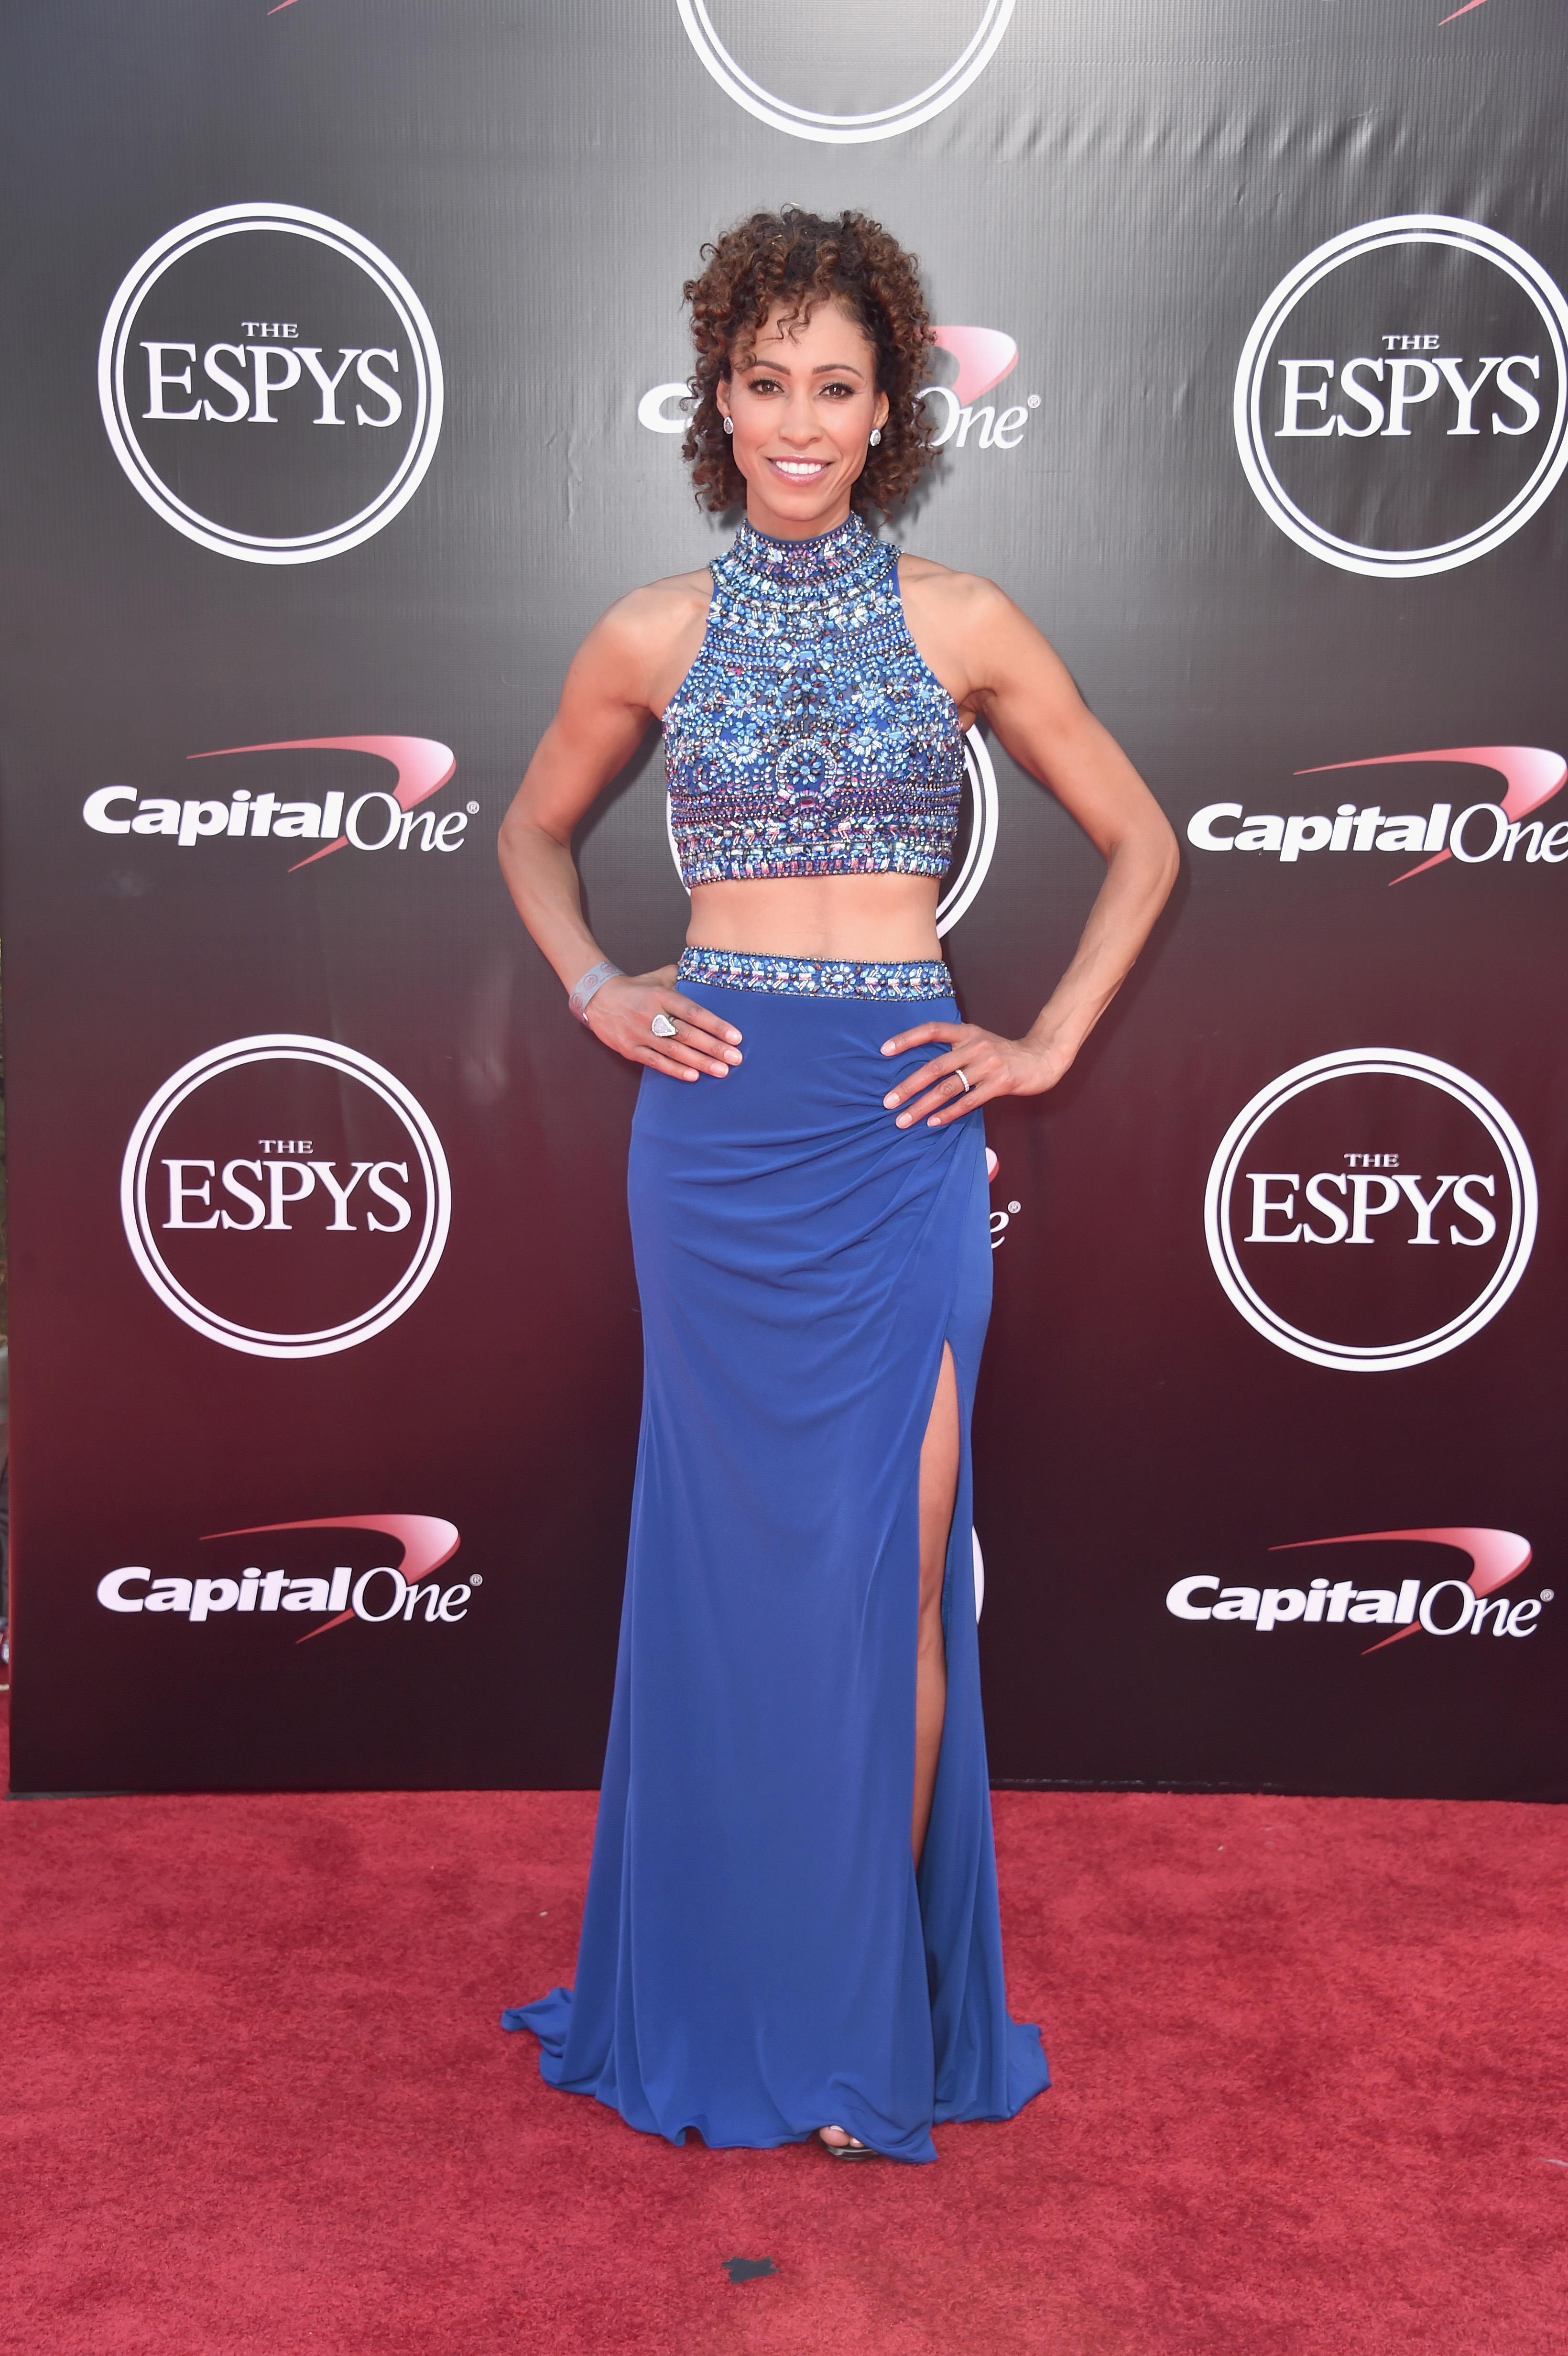 Espy Awards 2016 The Best And Worst Dressed Celebrities